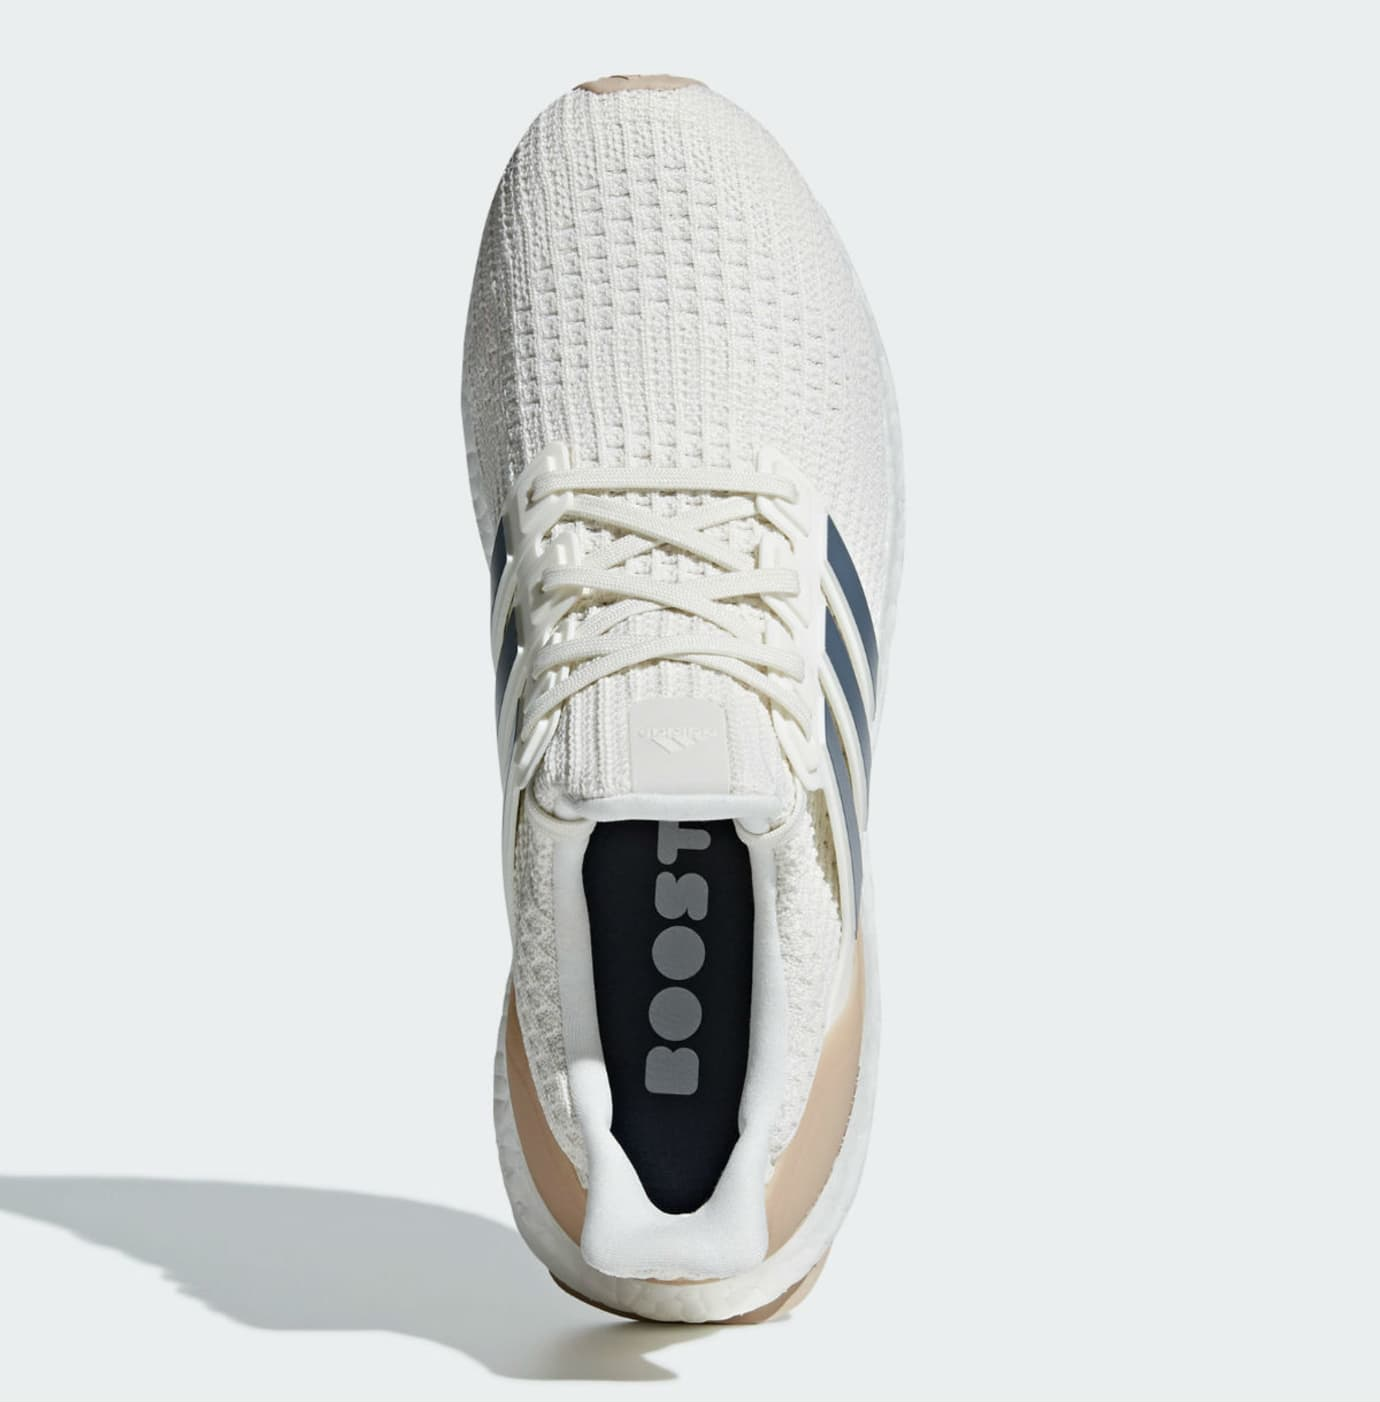 746029617f81b Image via Adidas Adidas Ultra Boost 4.0 Show Your Stripes Cloud White Tech  Ink Ash Pearl Release Date CM8114